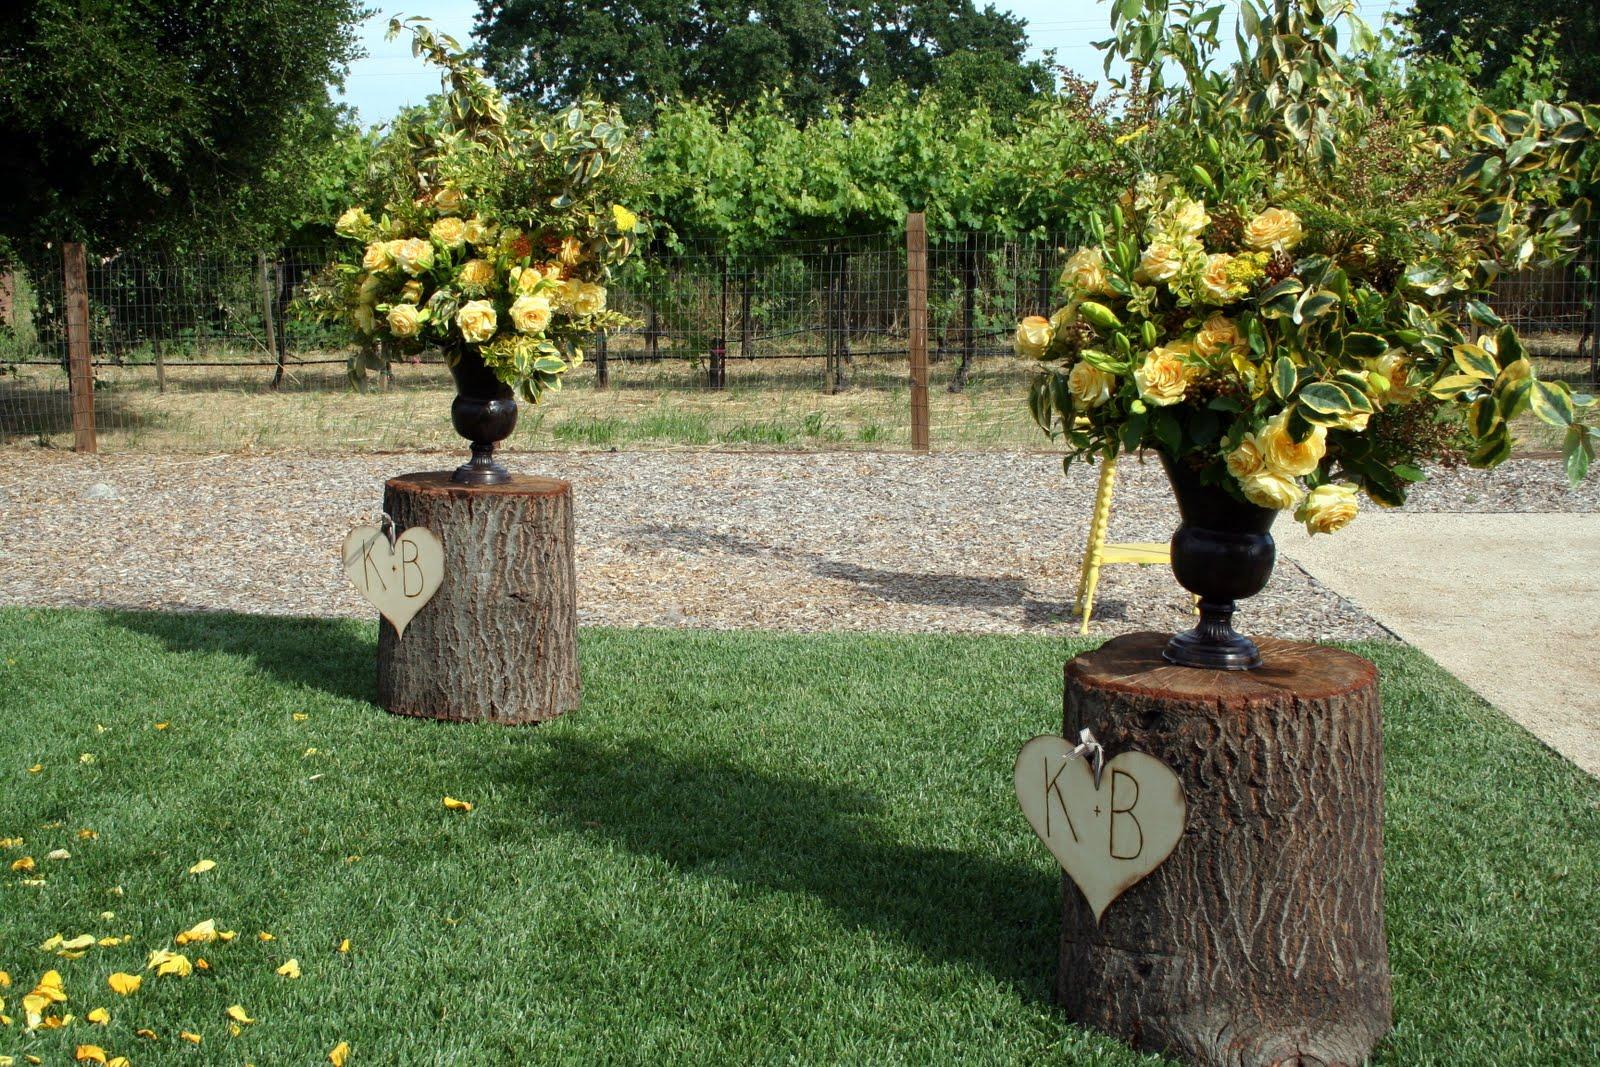 rustic wedding decorations rustic wedding decorations cute country new wedding large urns